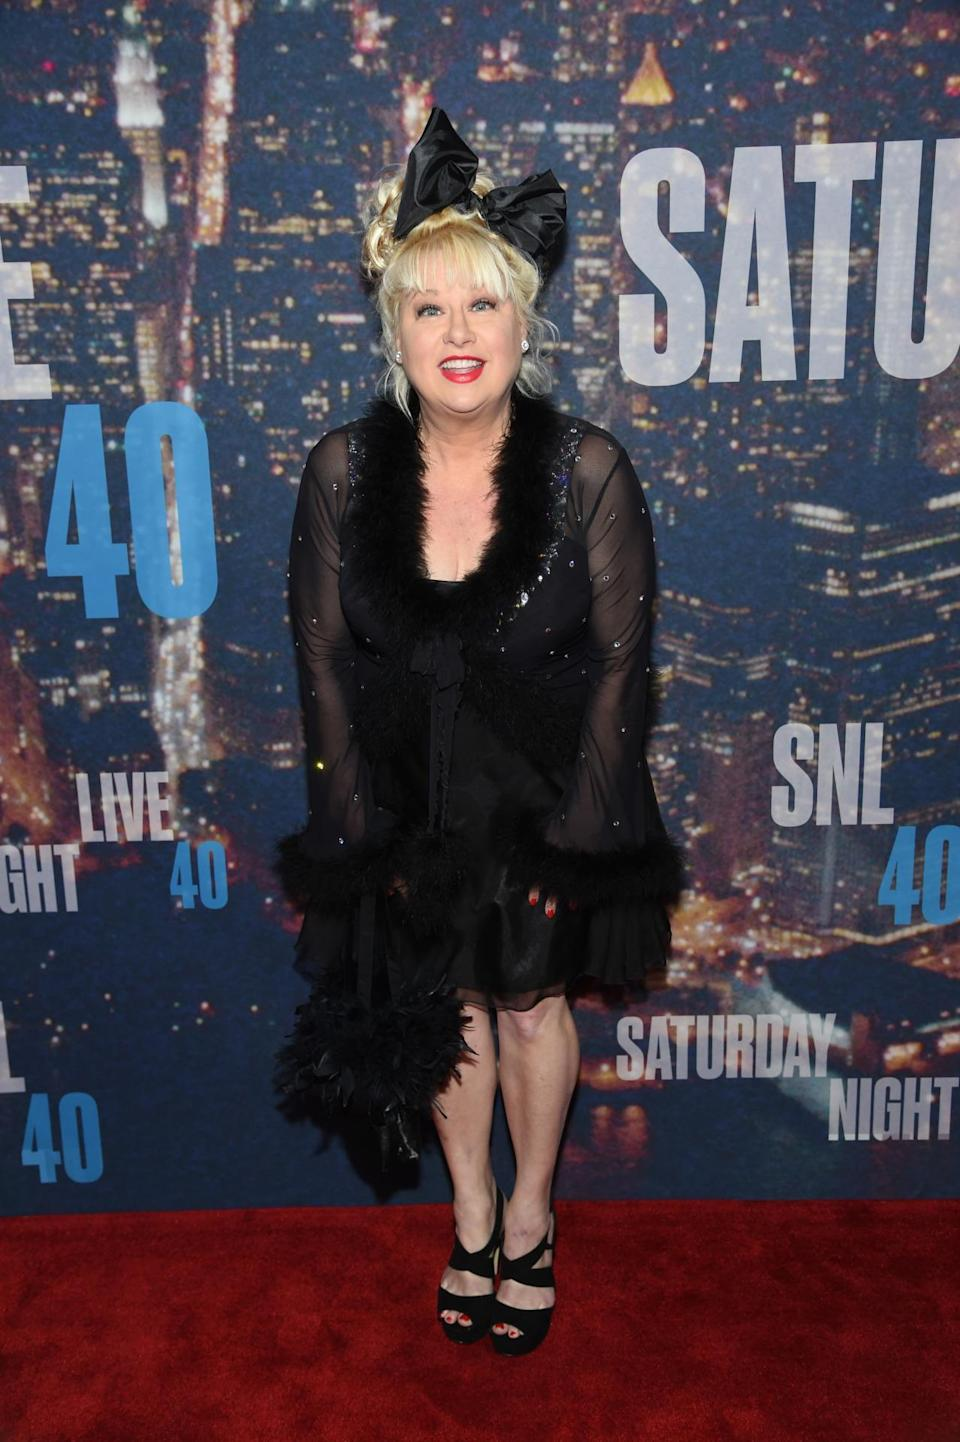 """Victoria Jackson channeled """"Material Girl"""" era Madonna with her lingerie-like dress and big bow in her hair."""